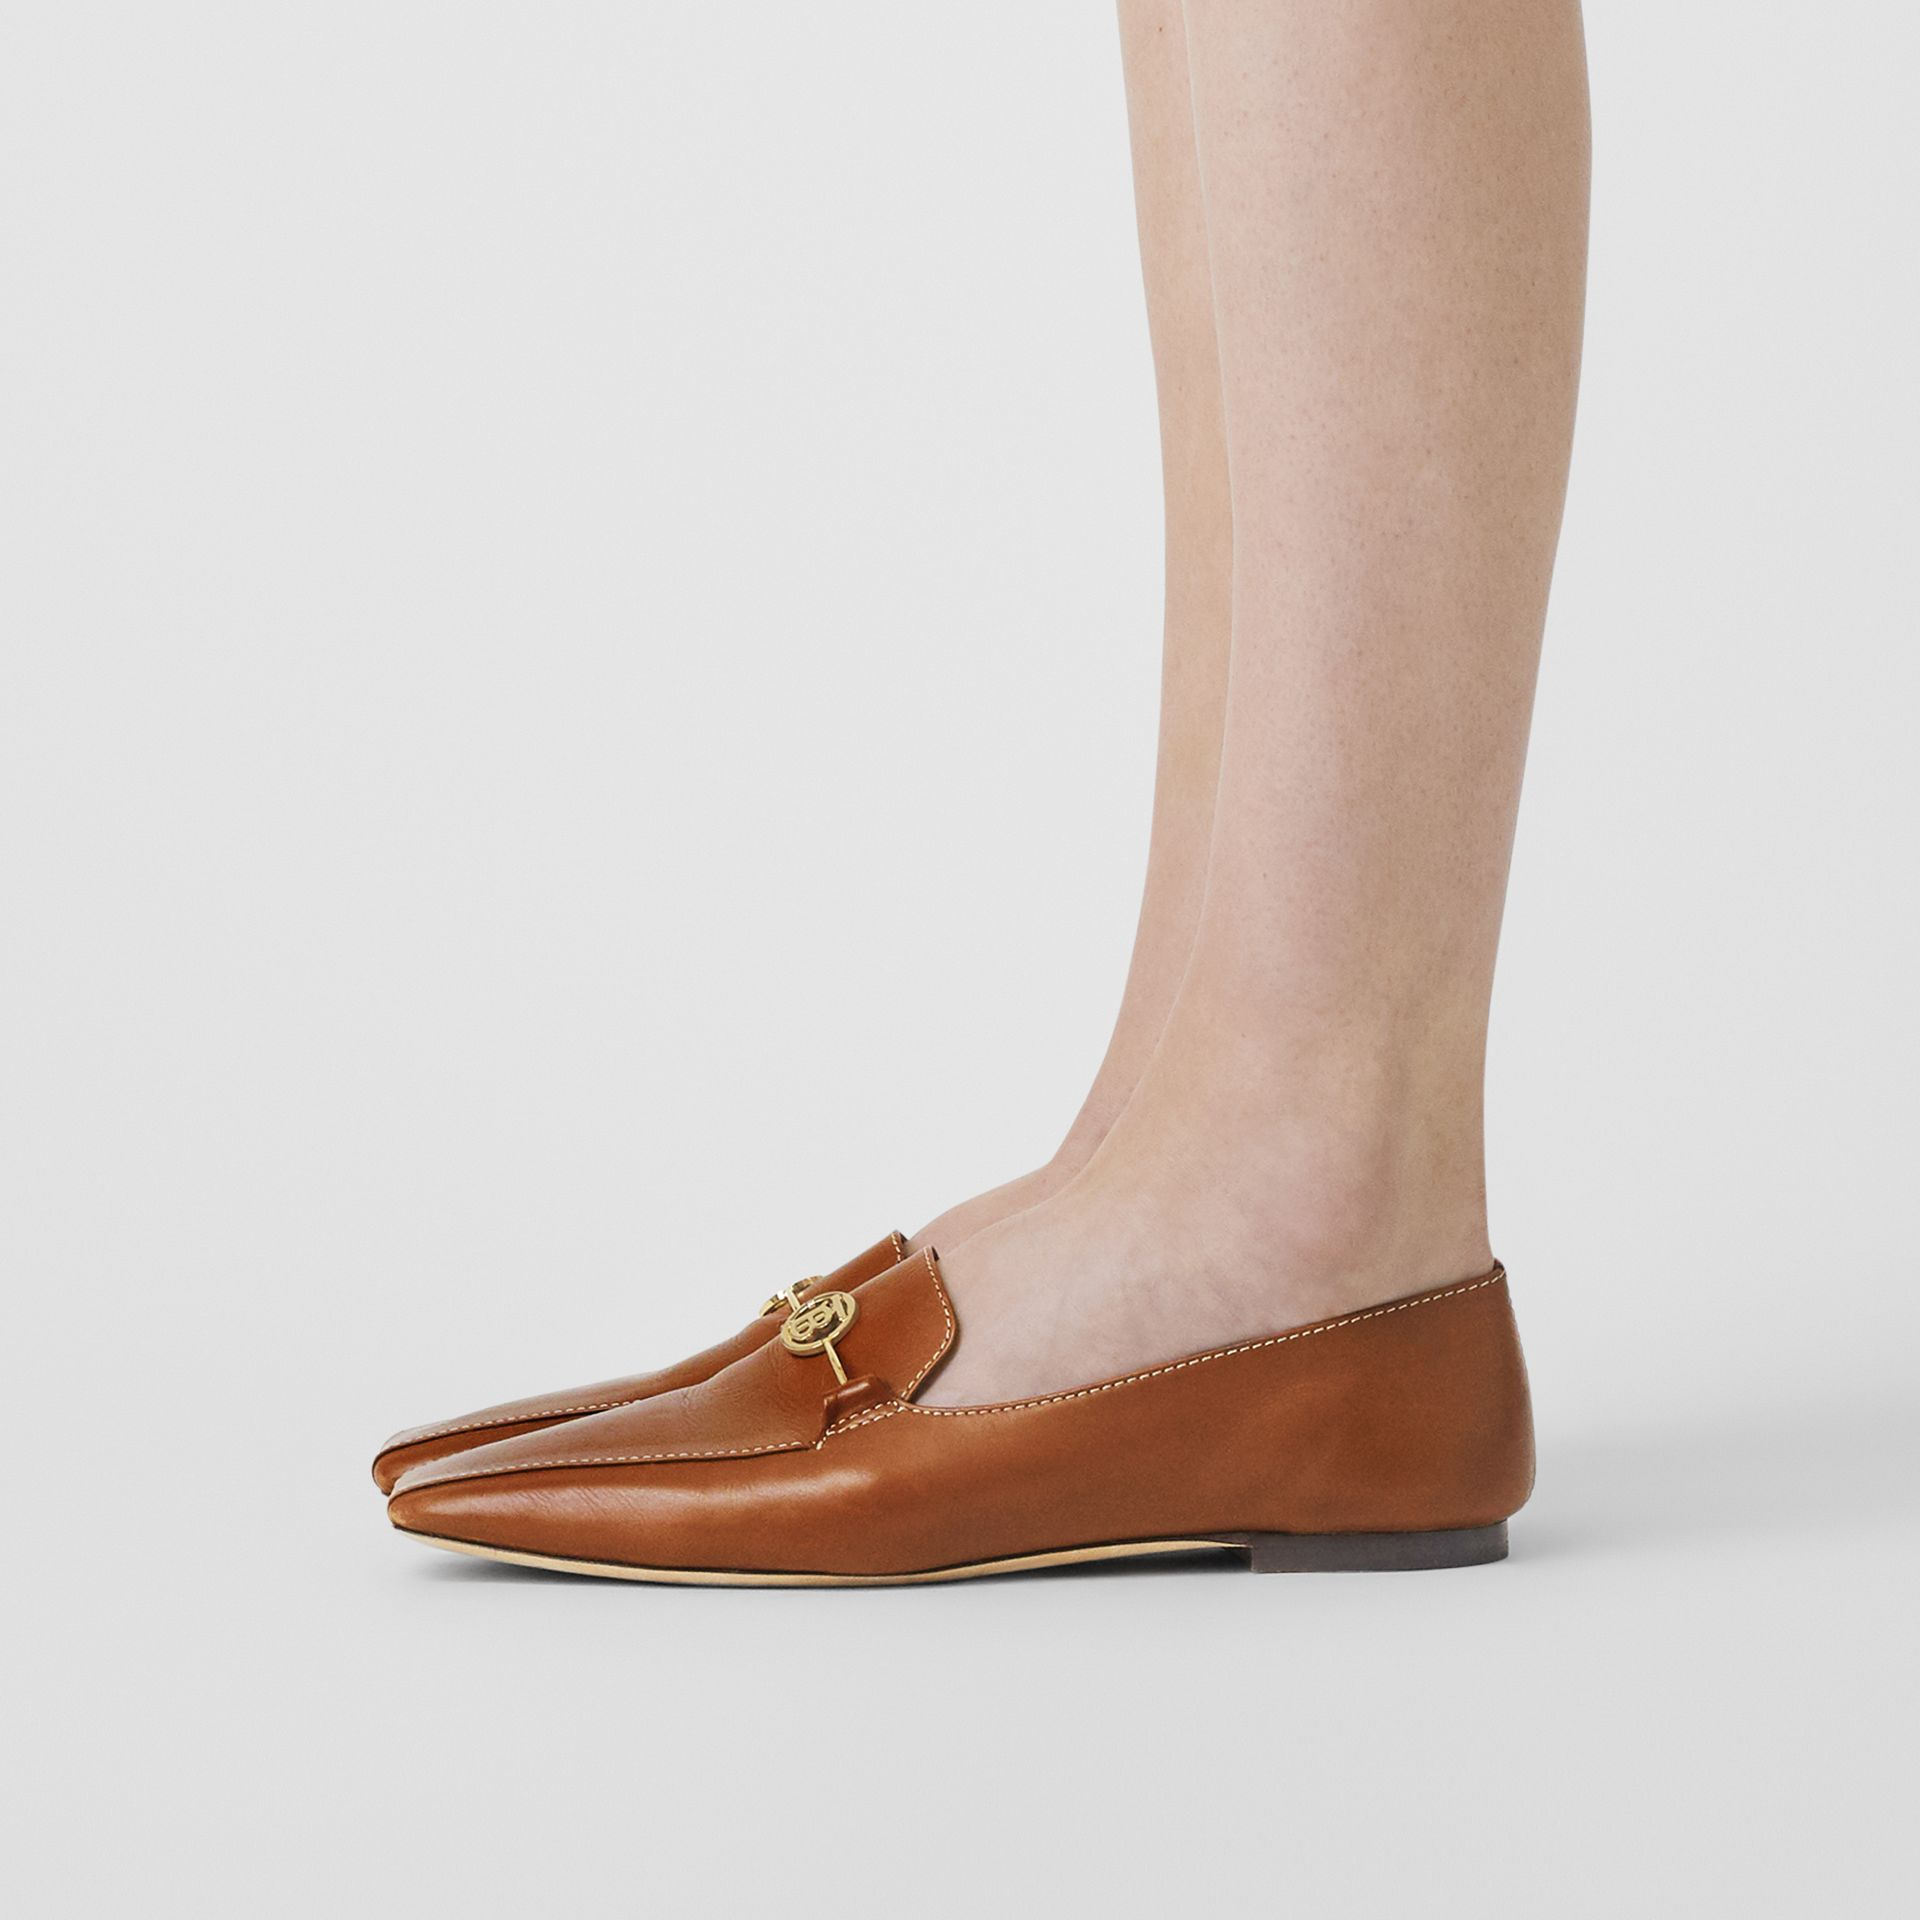 Monogram Motif Leather Loafers in Tan - Women | Burberry - gallery image 2